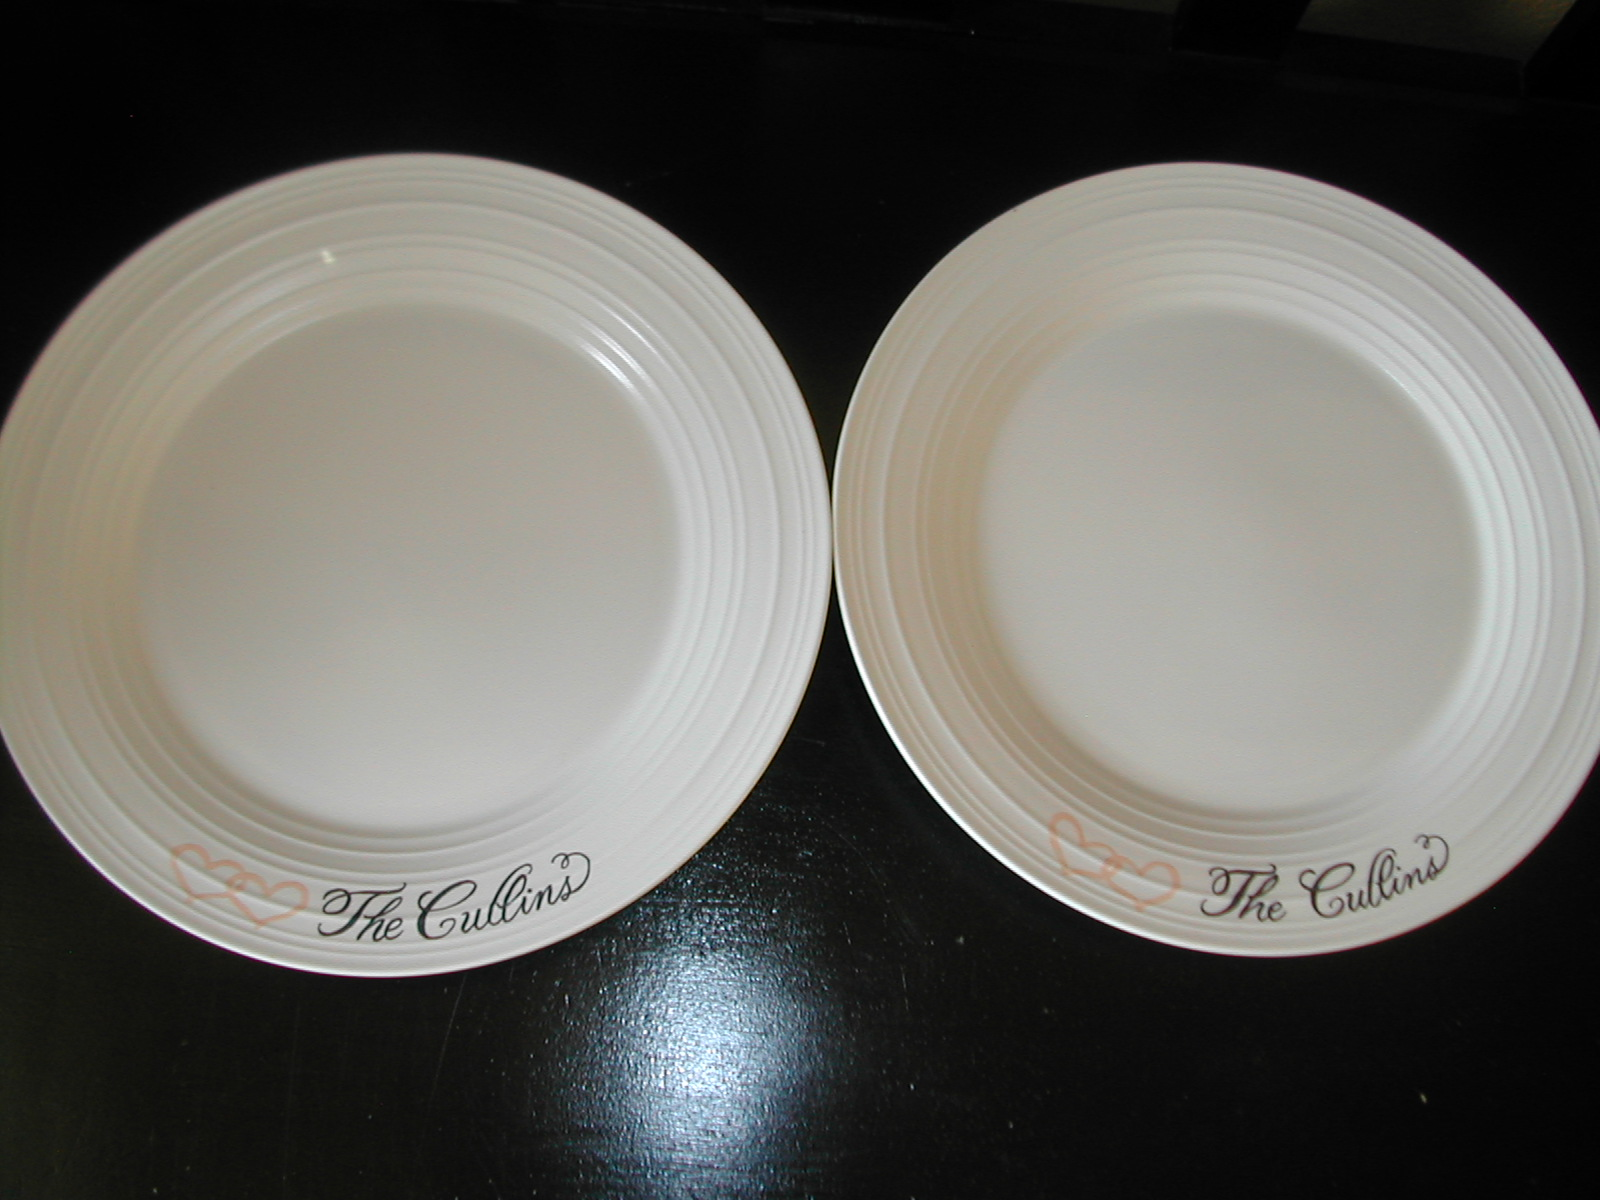 Wedding Dinner Plates | Wedding Dinner Plates Lettering Art Studio